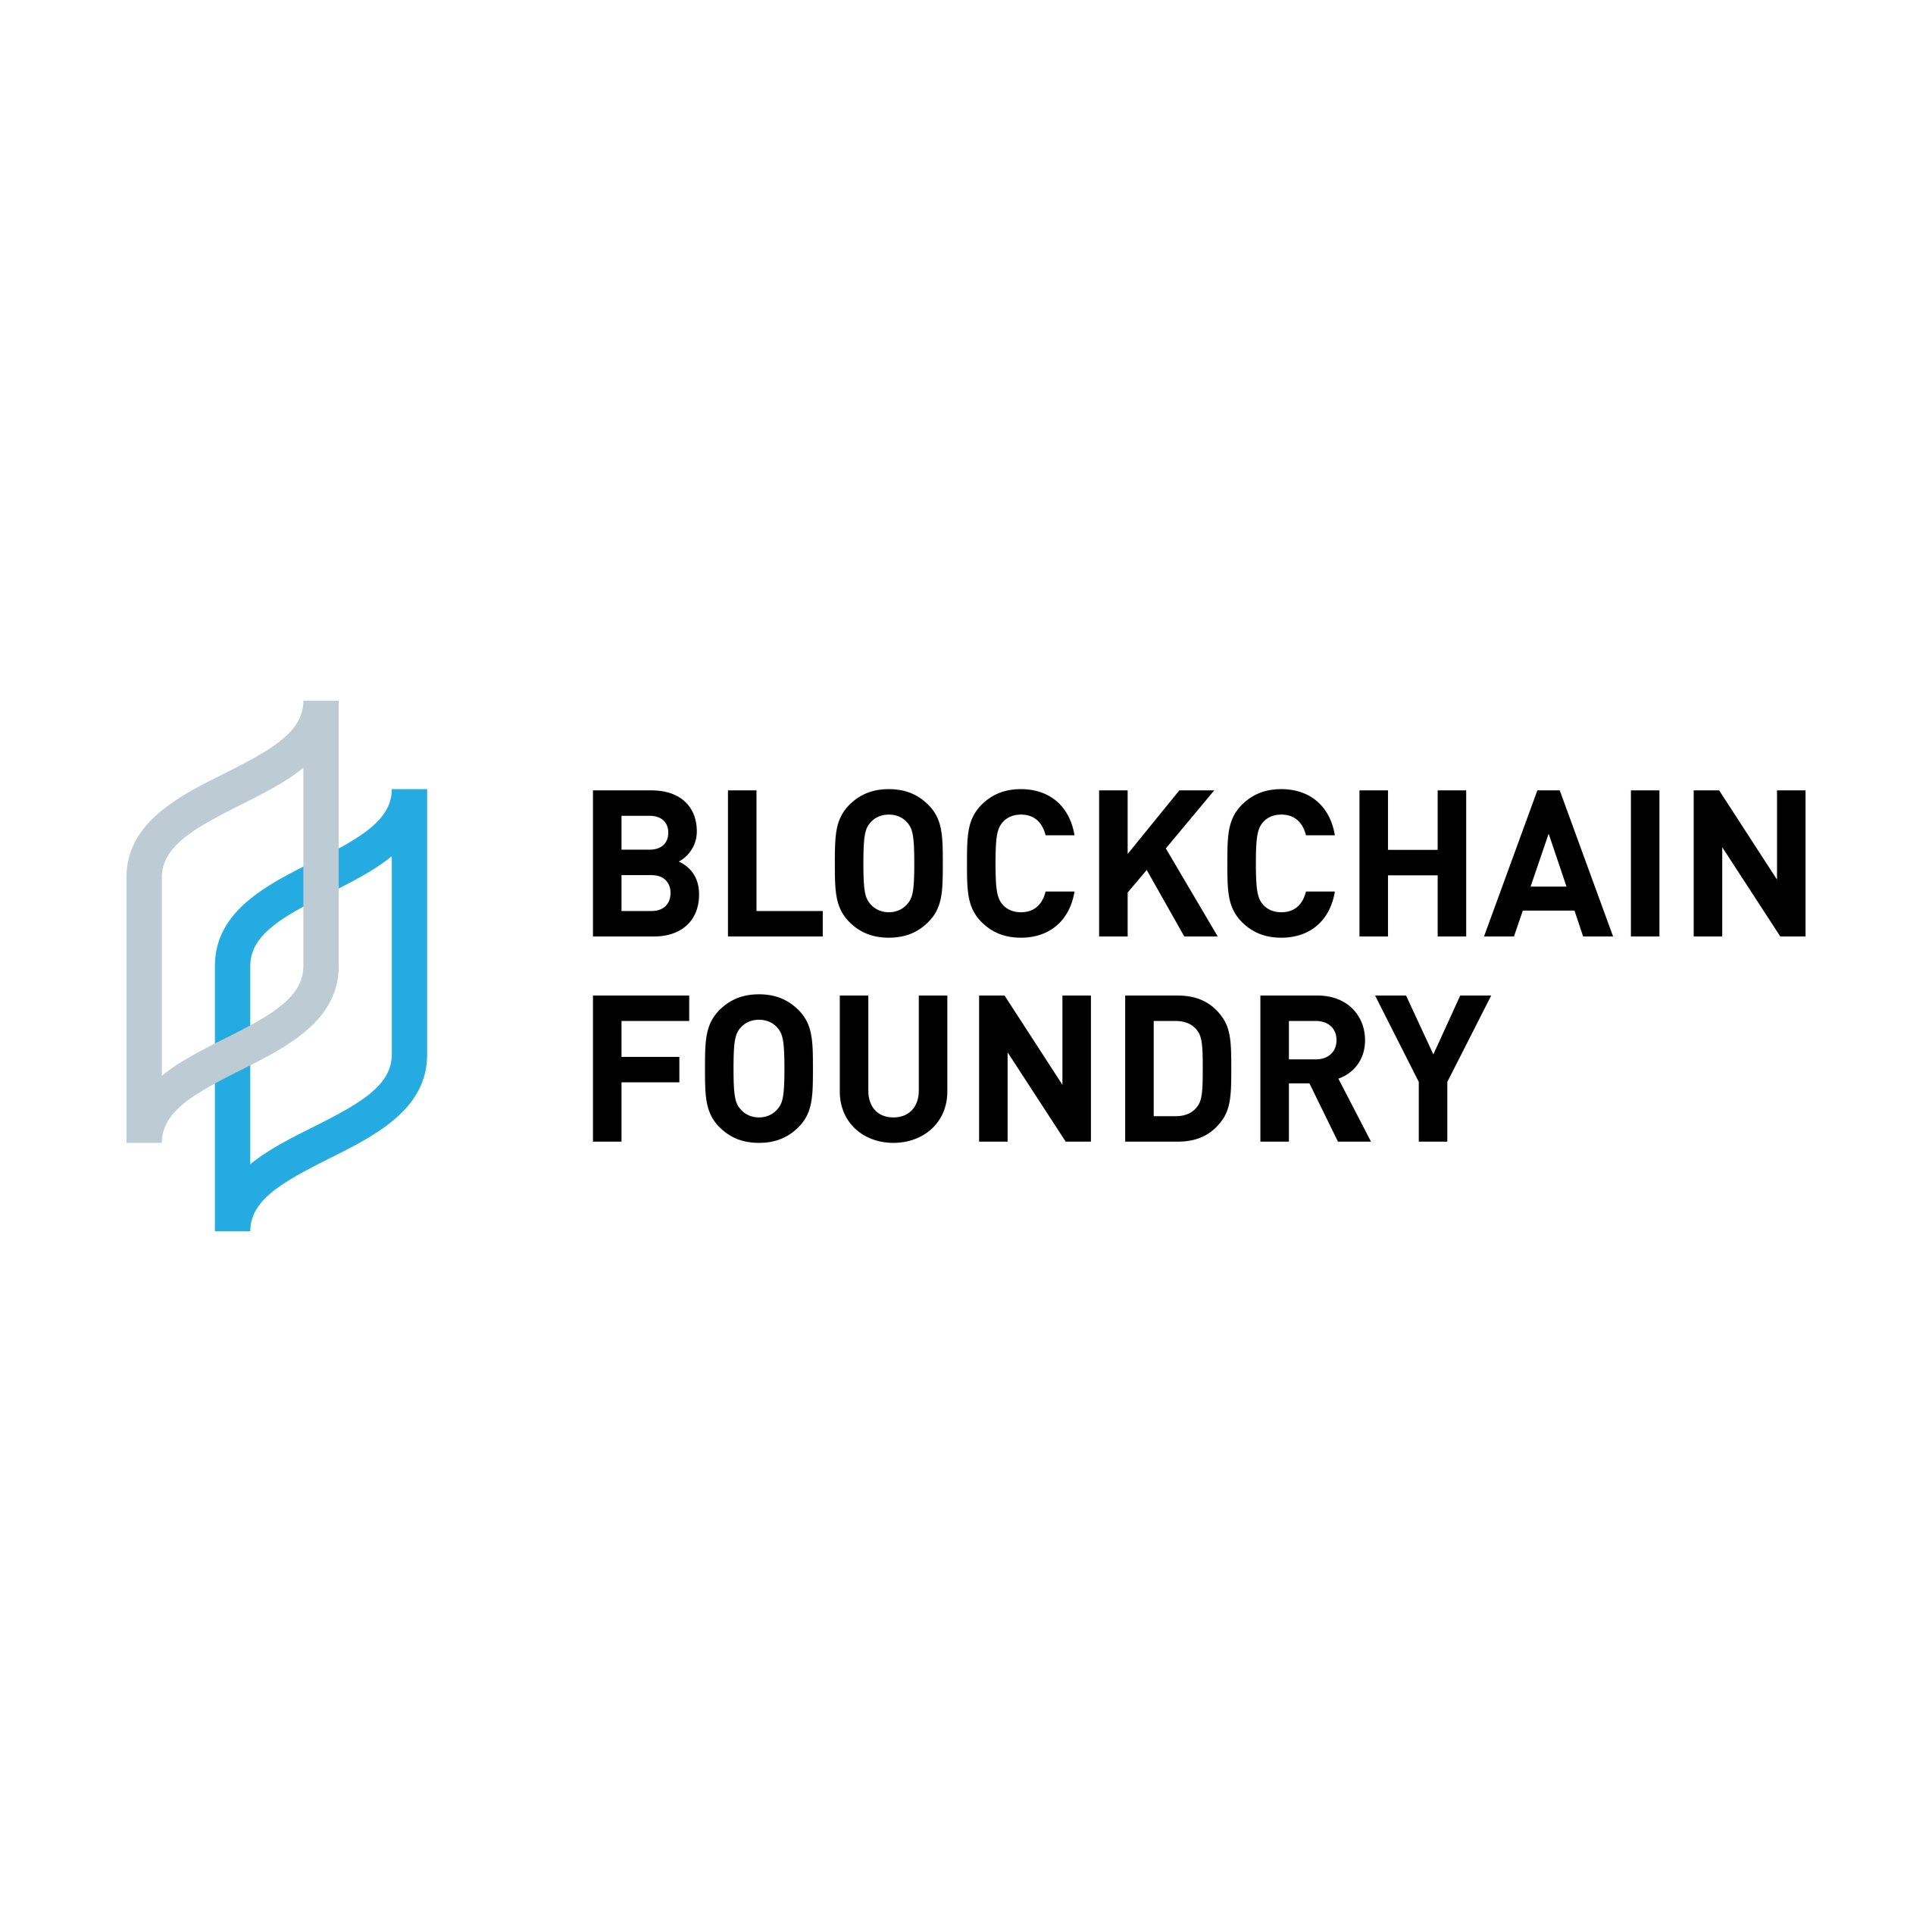 Blockchain Foundry Announces Change in Financial Year End